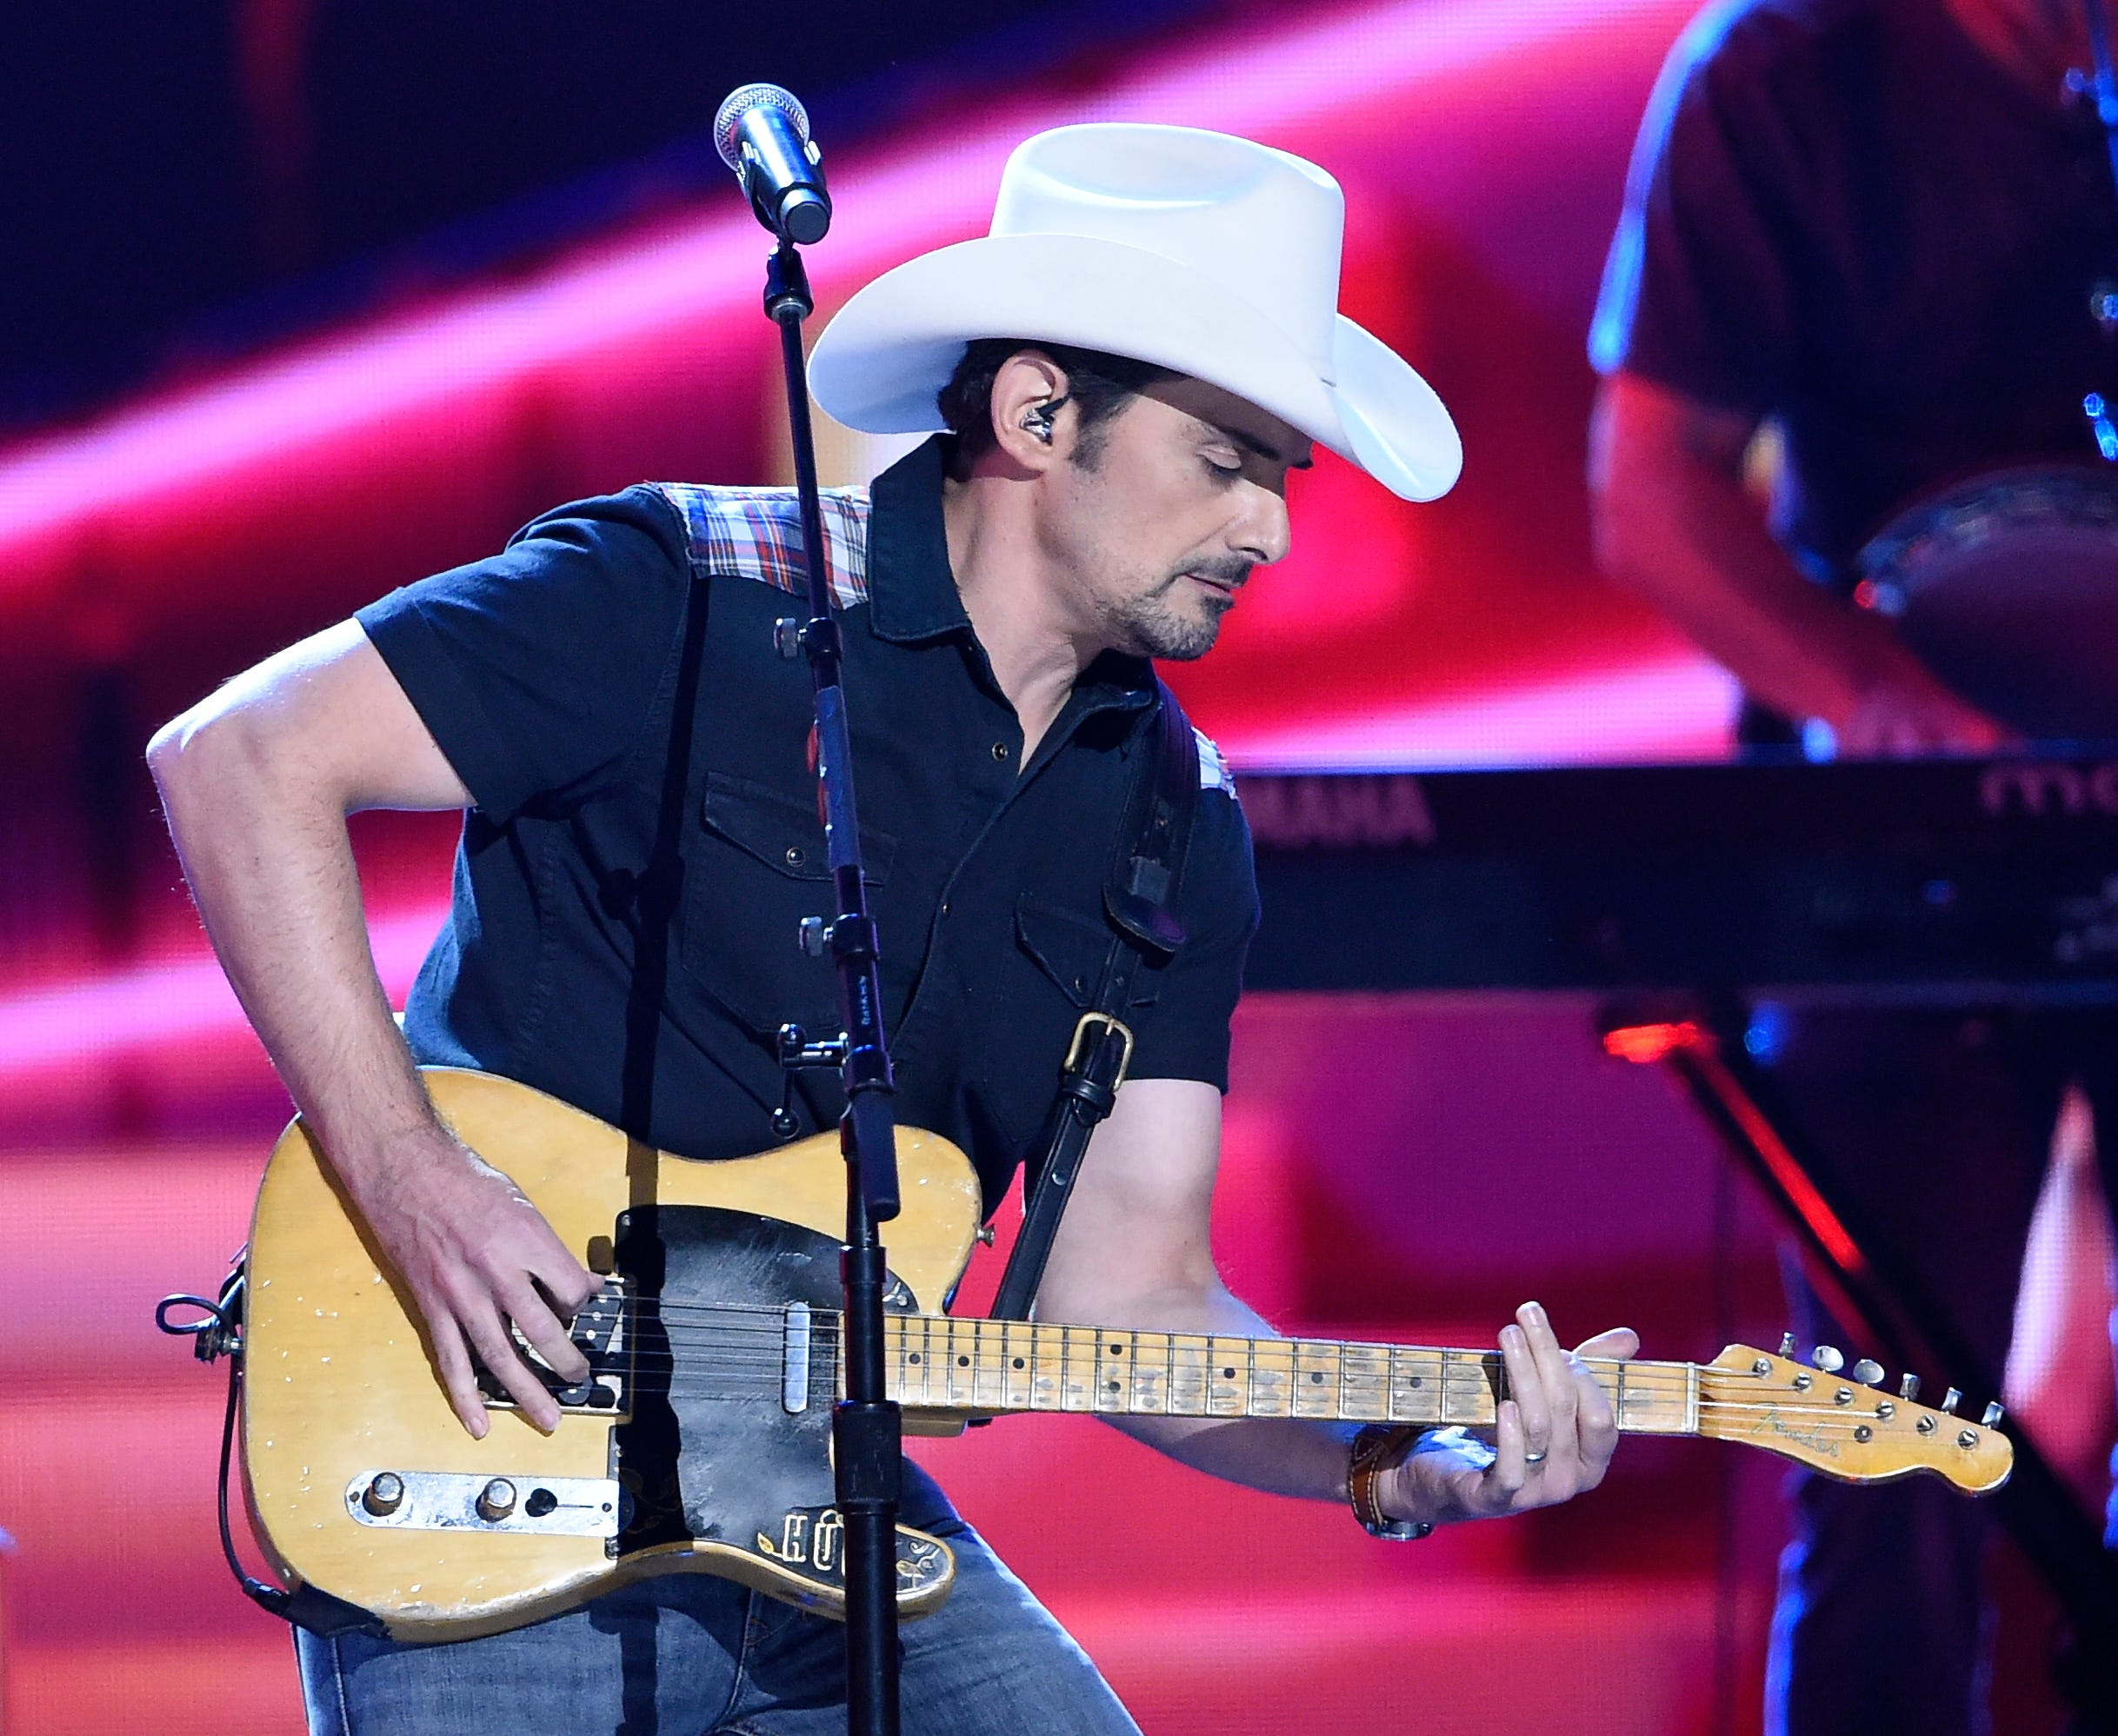 781cb36c8 Brad Paisley releases new song  My Miracle  for wife Kimberly Williams-Paisley  The Tennessean - 15 33 PM ET March 11